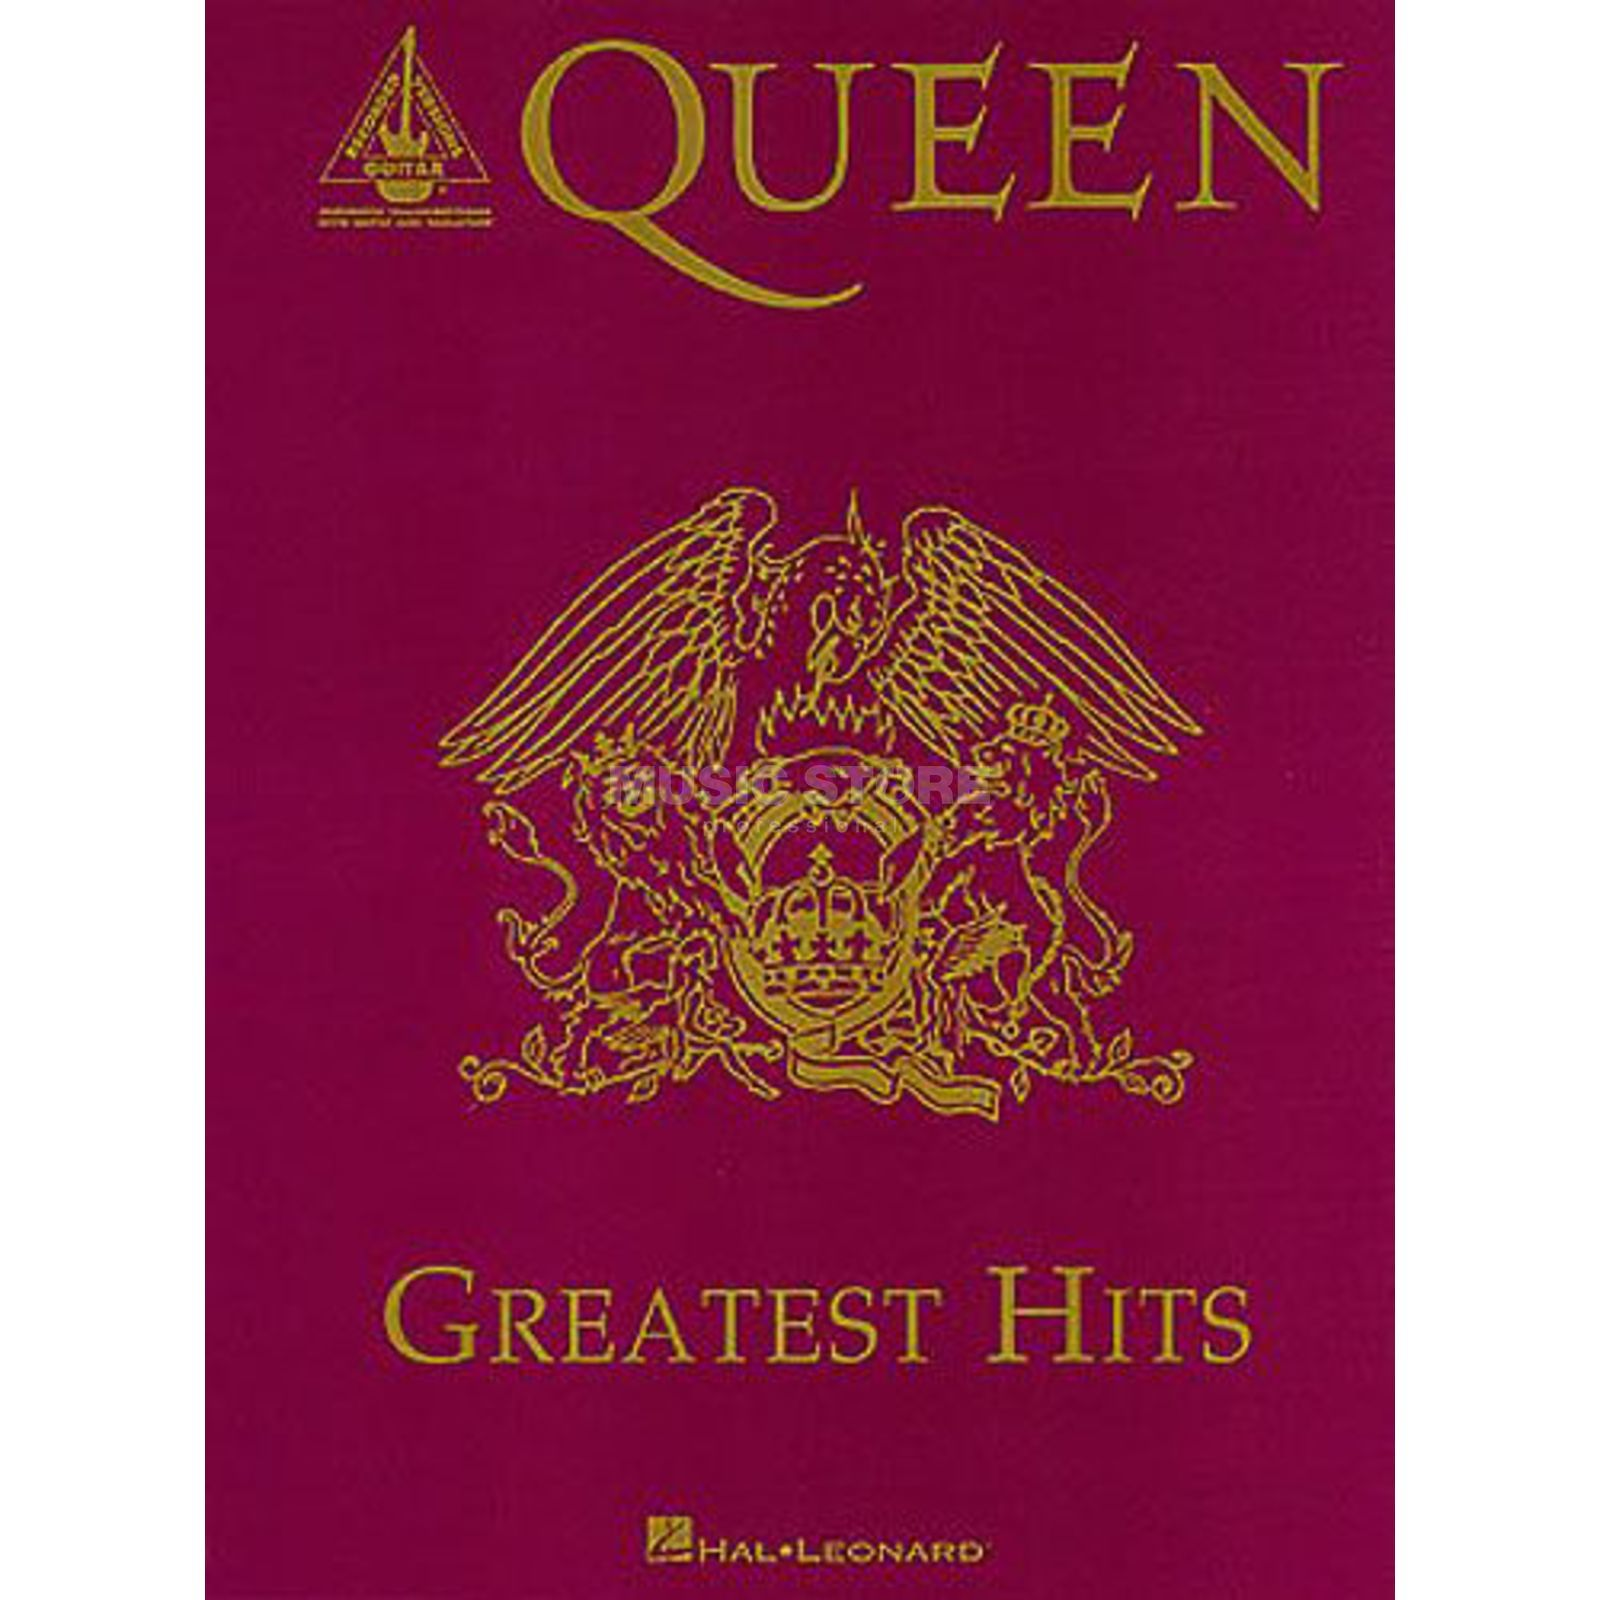 Hal Leonard Queen: Greatest Hits (Guitar Recorded Versions) Produktbillede